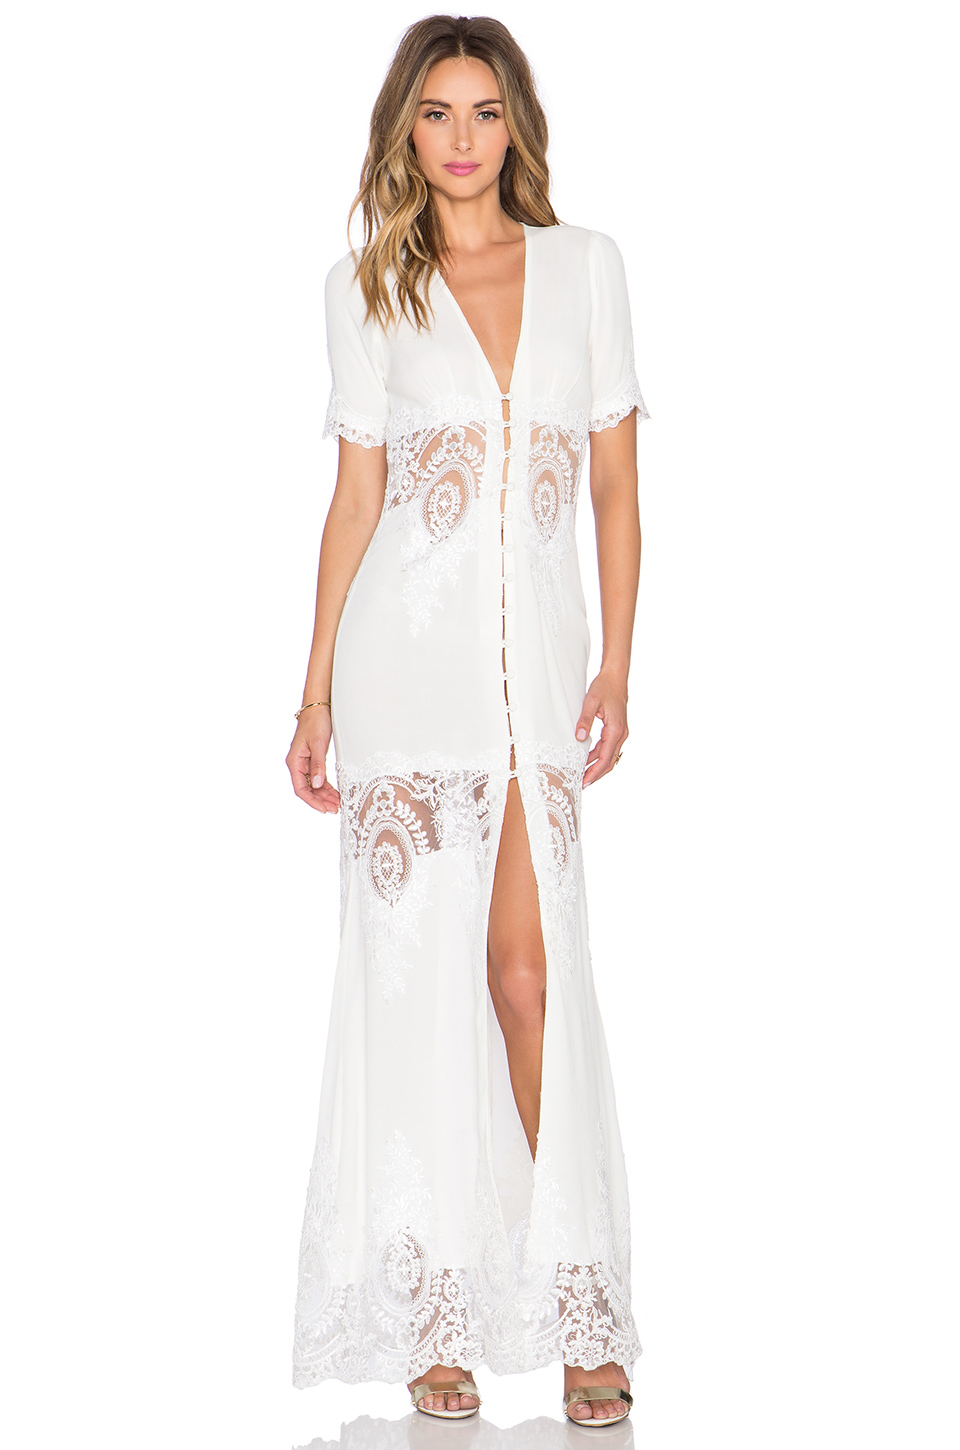 Stone Cold Fox White Dress – fashion dresses